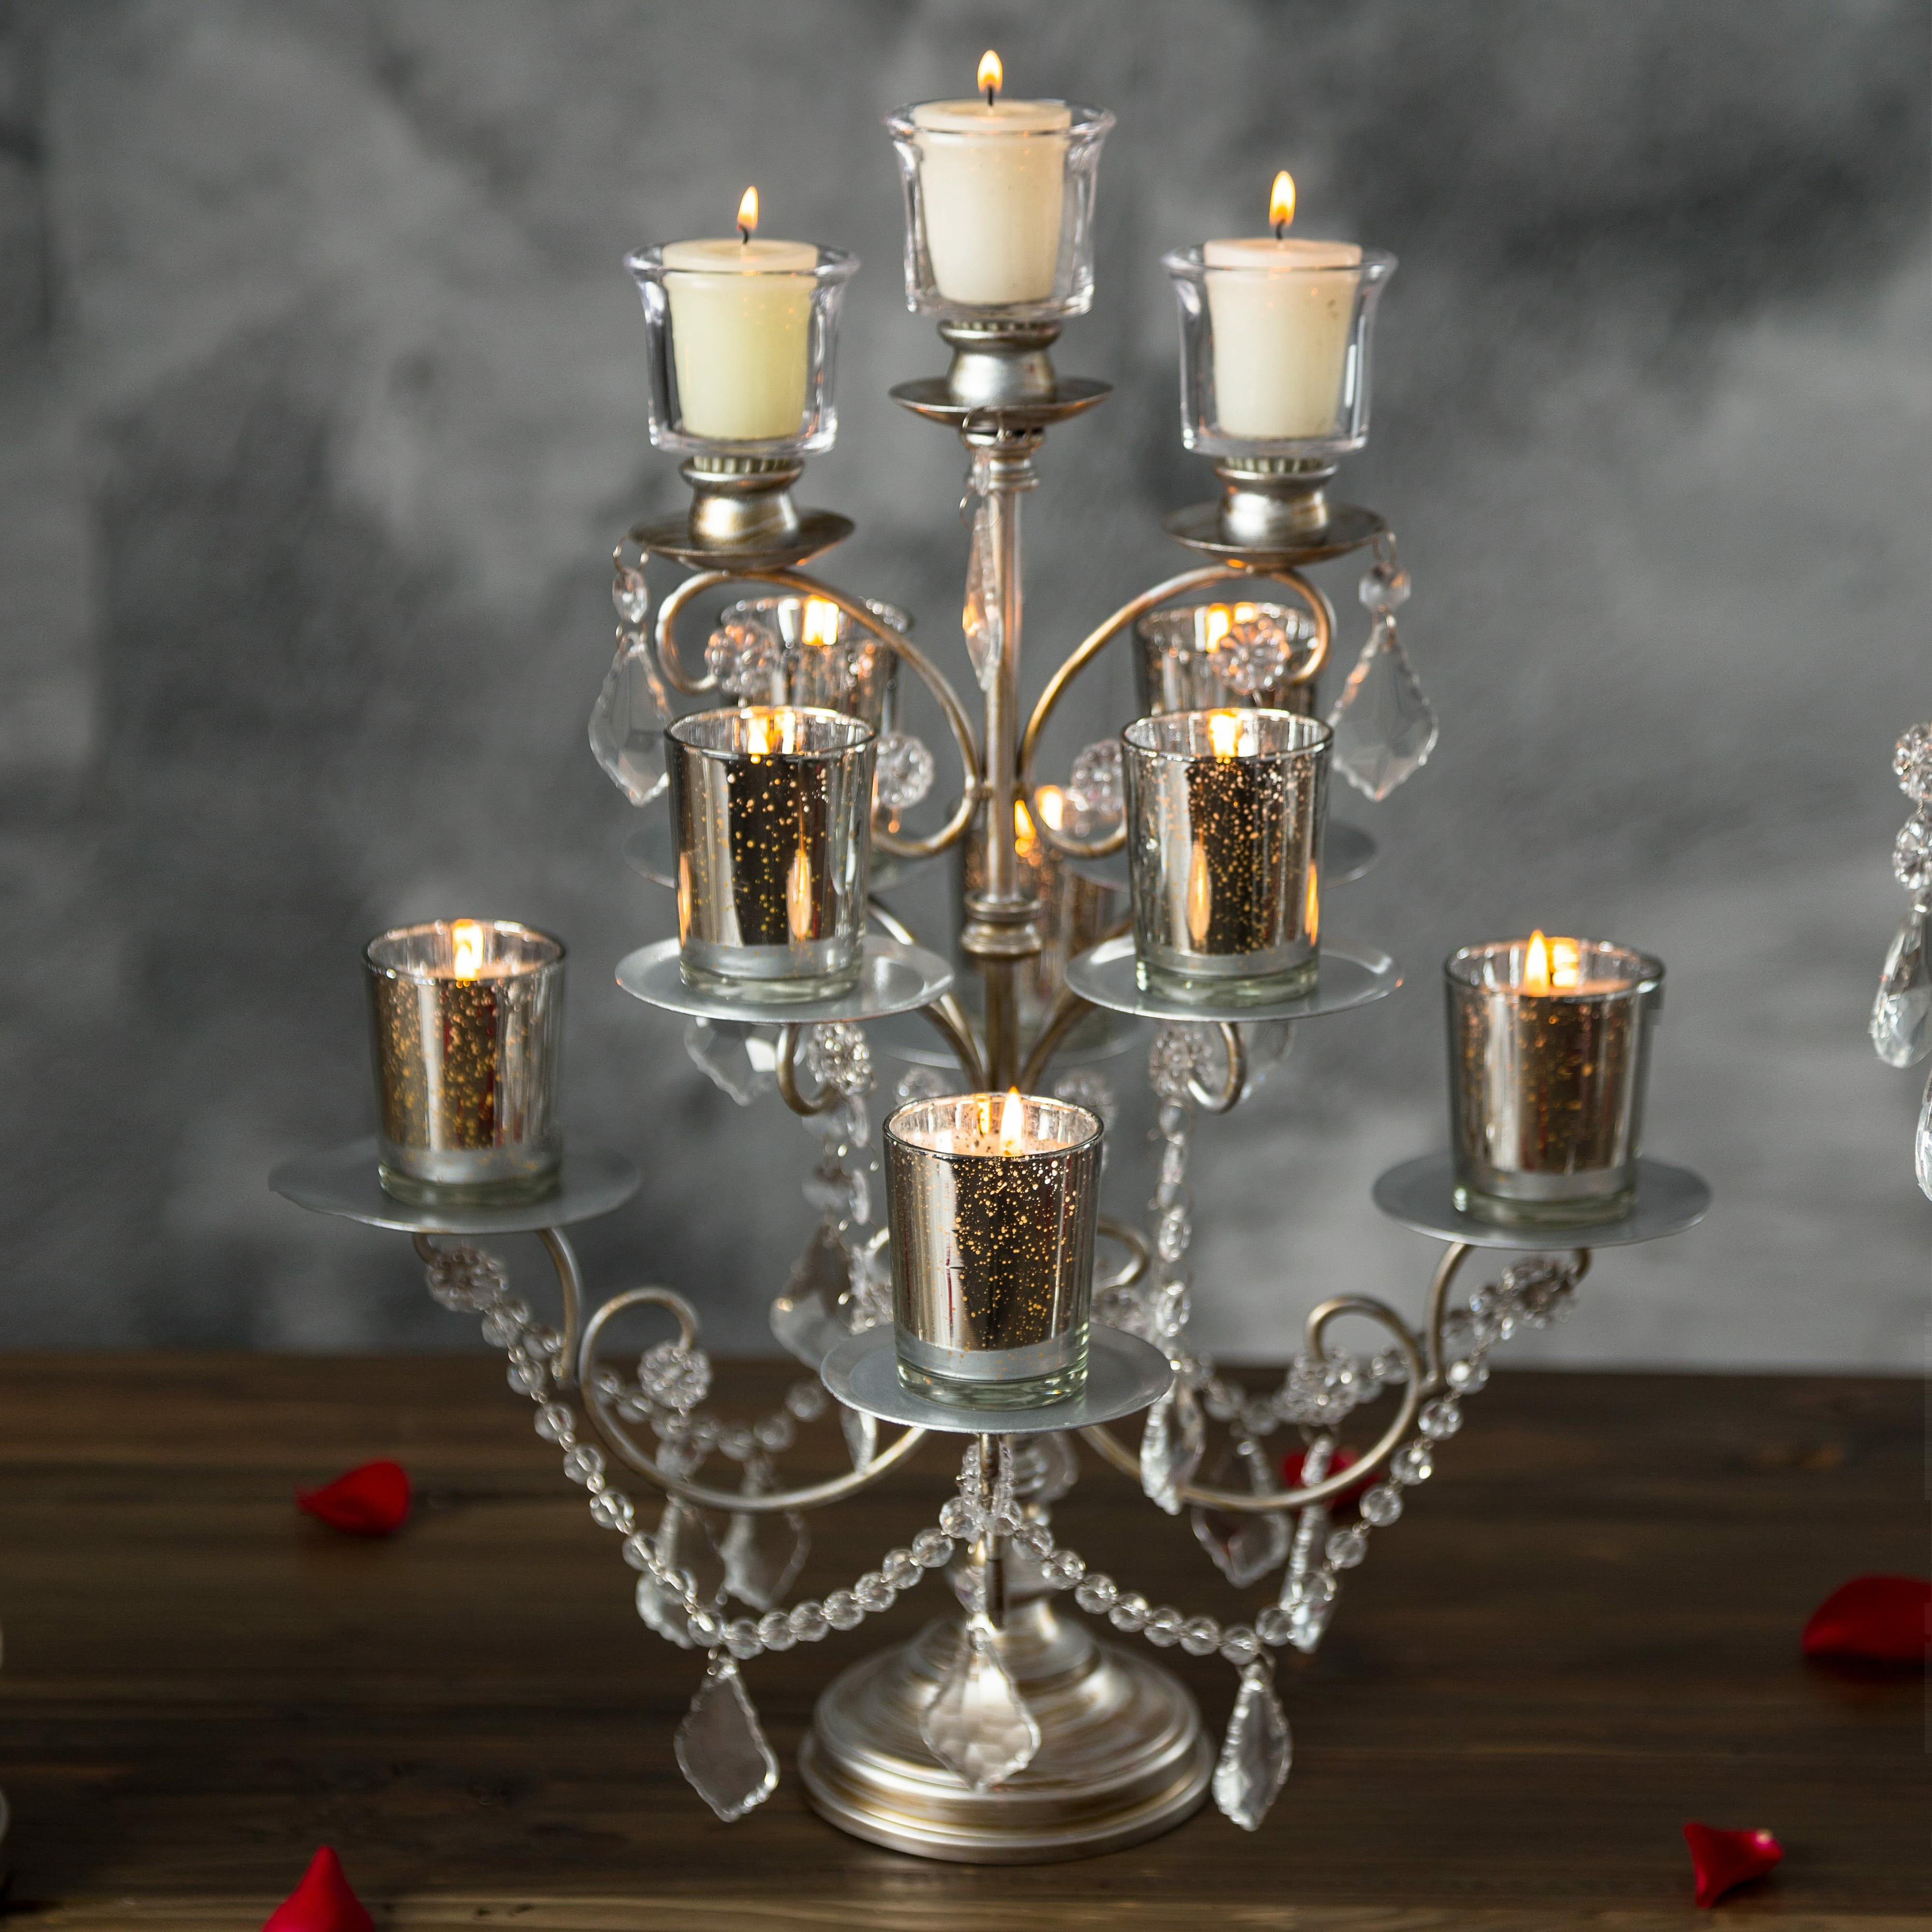 House Of Hampton Sherwood Crystal Draped Metal Cupcake Stand - Cupcake chandelier stand crystals